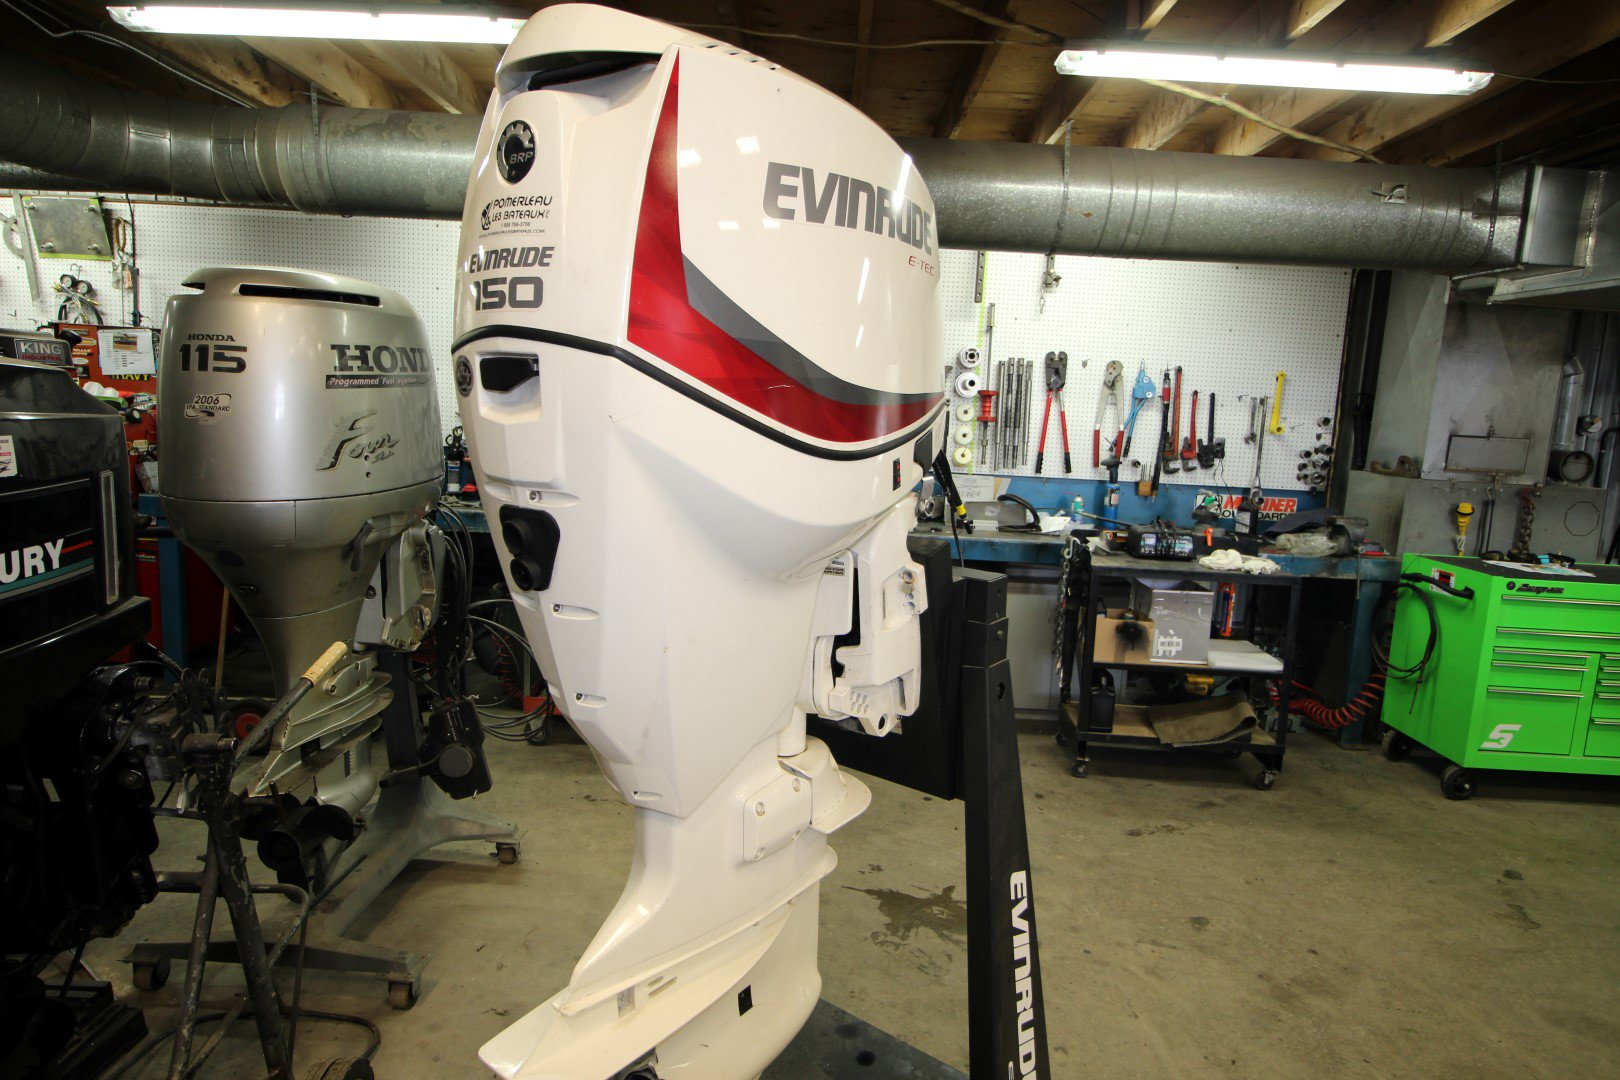 evinrude 150 hp injection directe. Black Bedroom Furniture Sets. Home Design Ideas